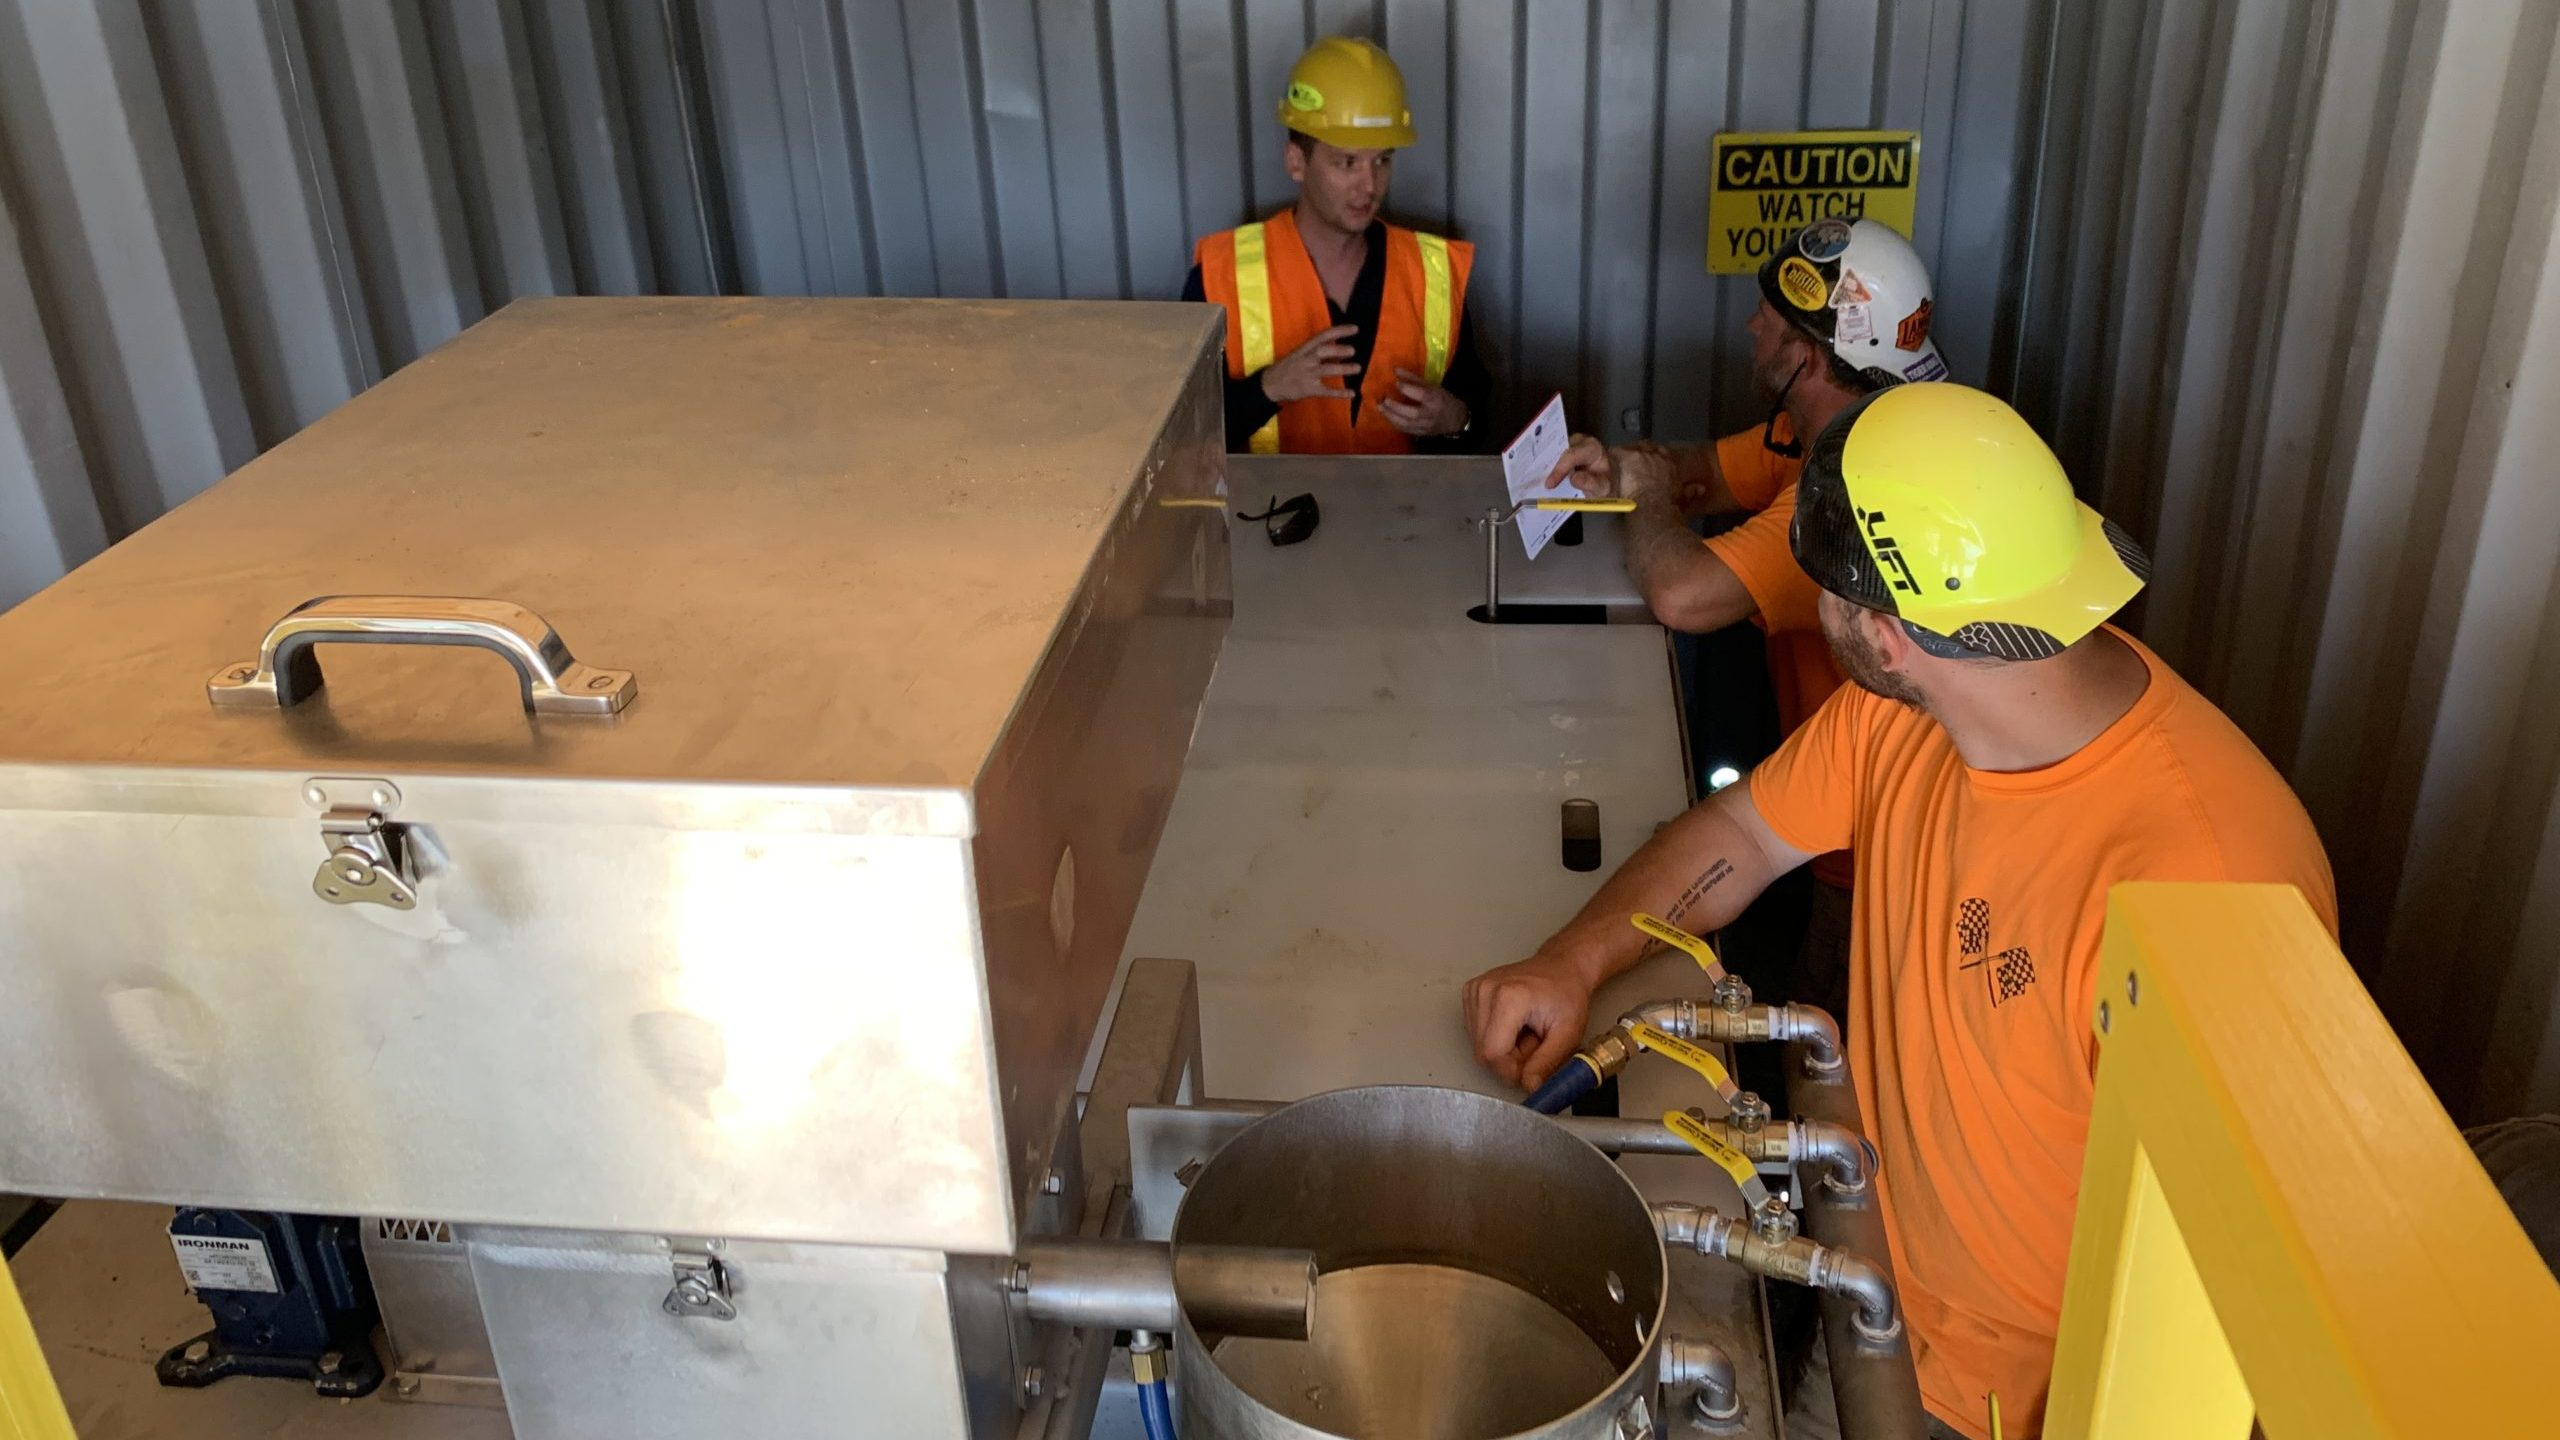 A clearwater employee is training two men how to use Clearwater's polymer batching system